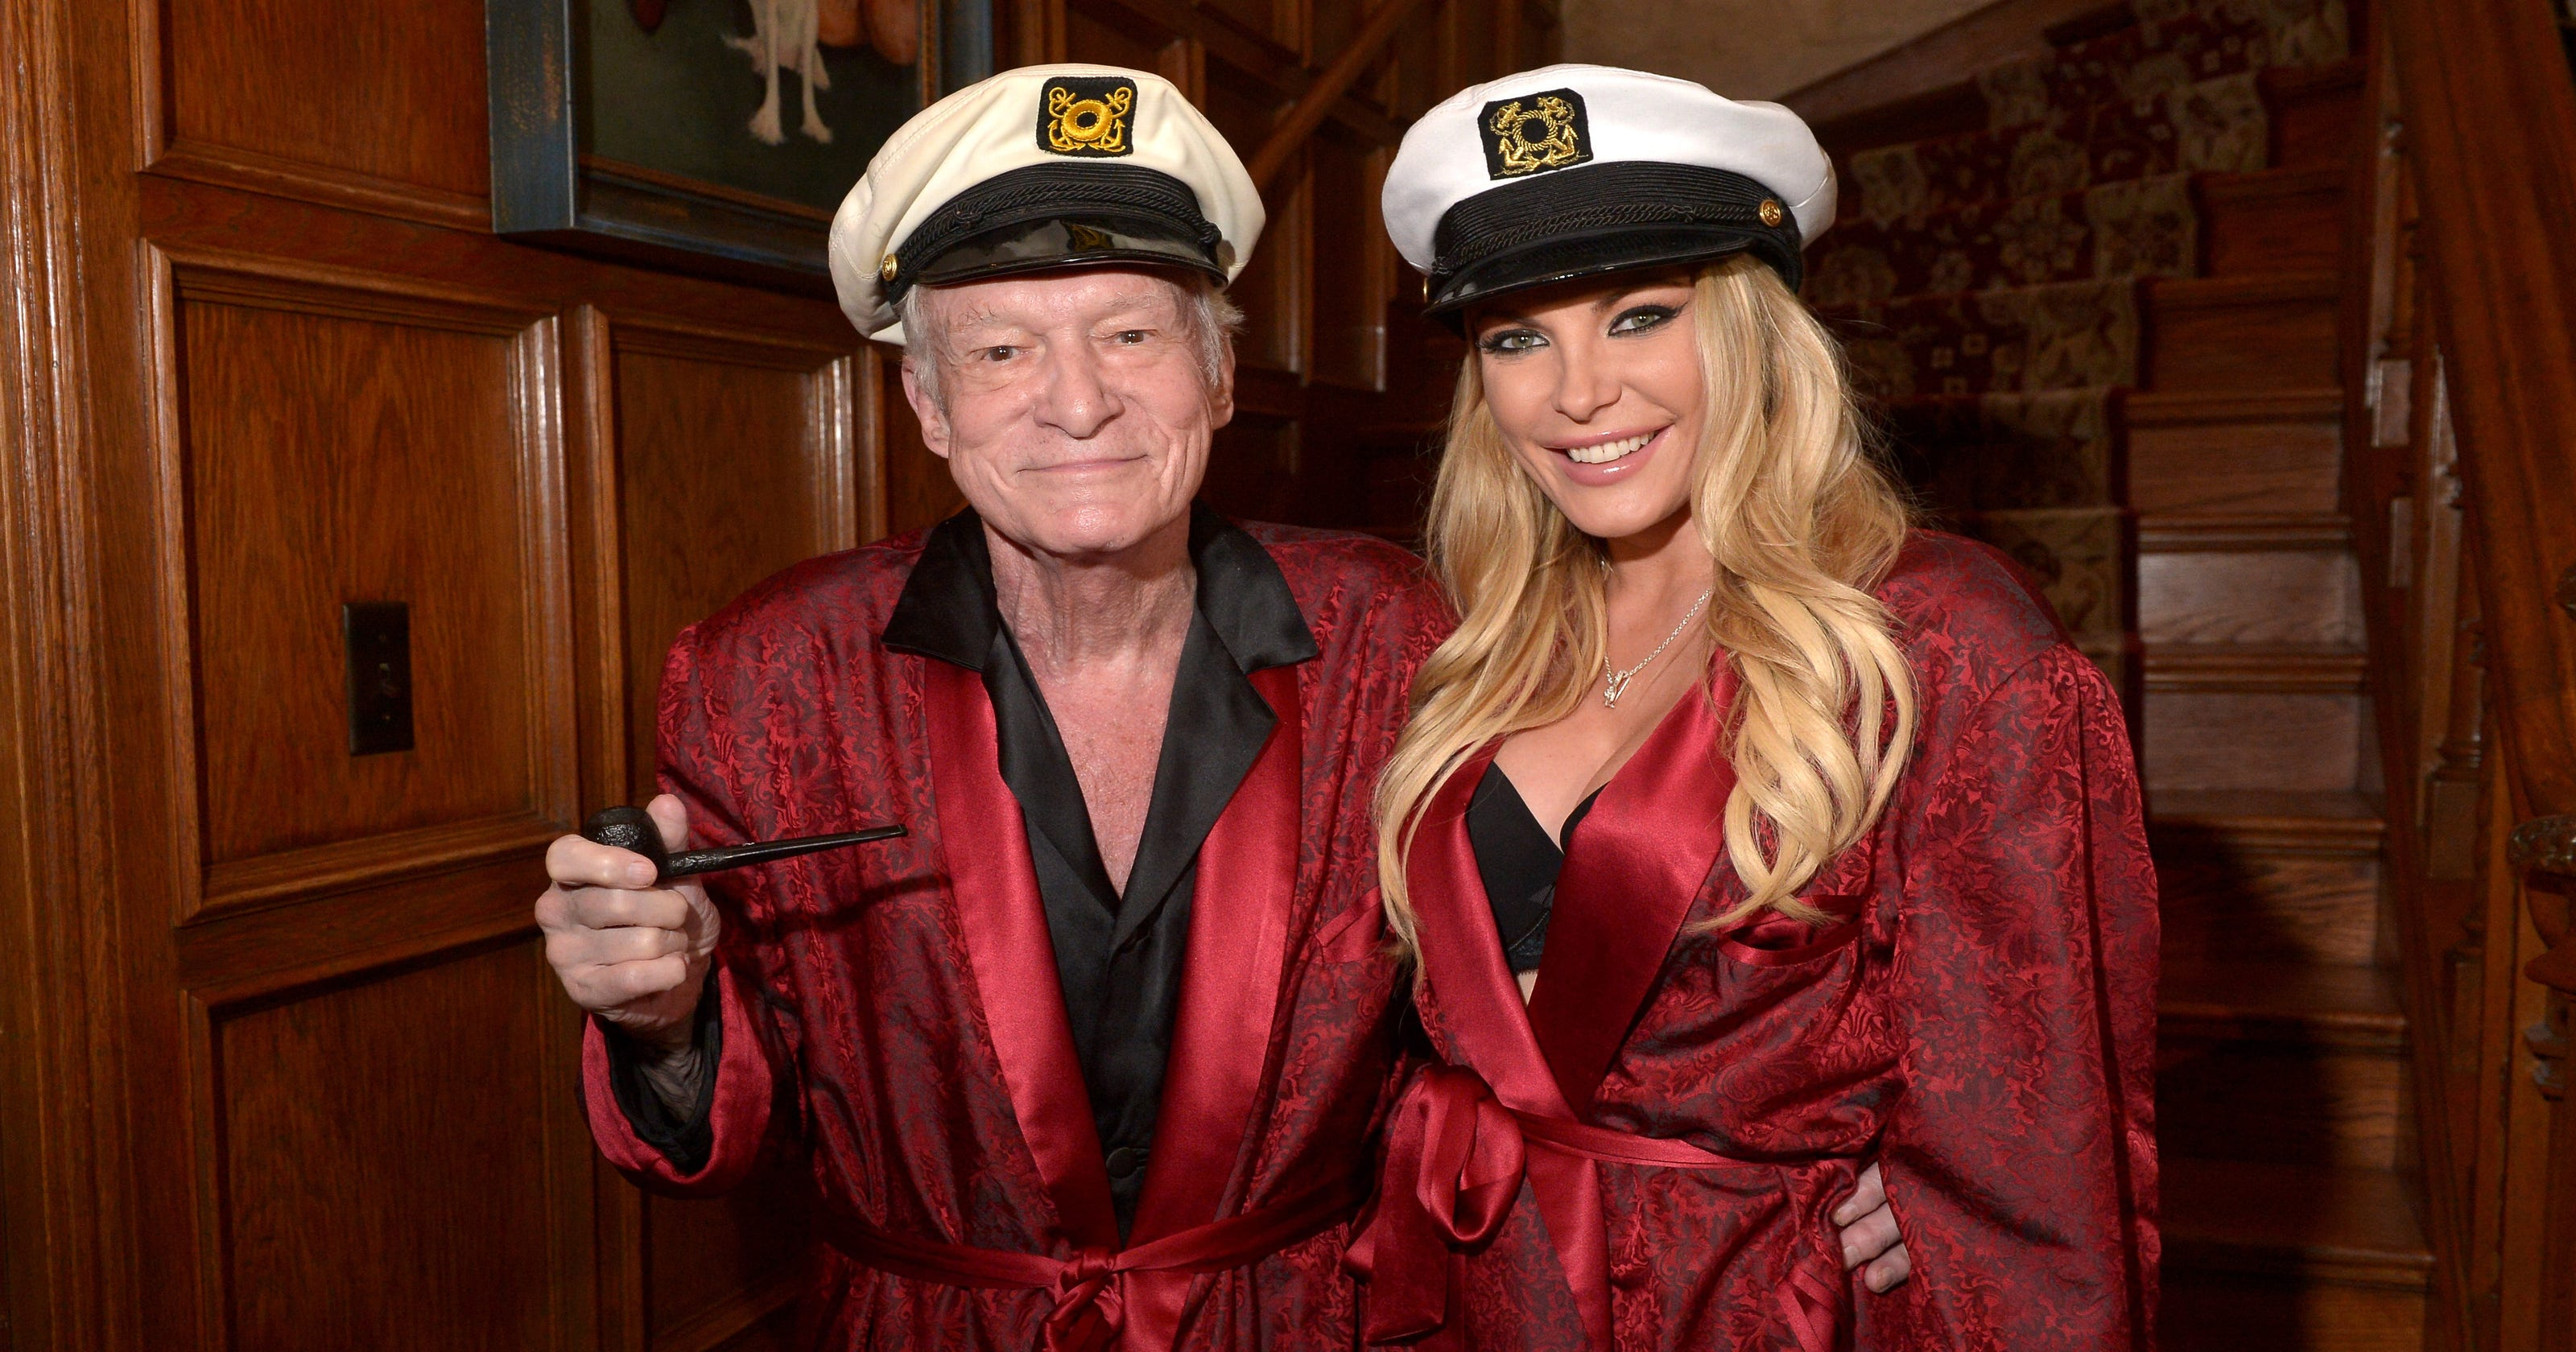 Playboy magazine founder Hugh Hefner dies at 91 547dc9b42137